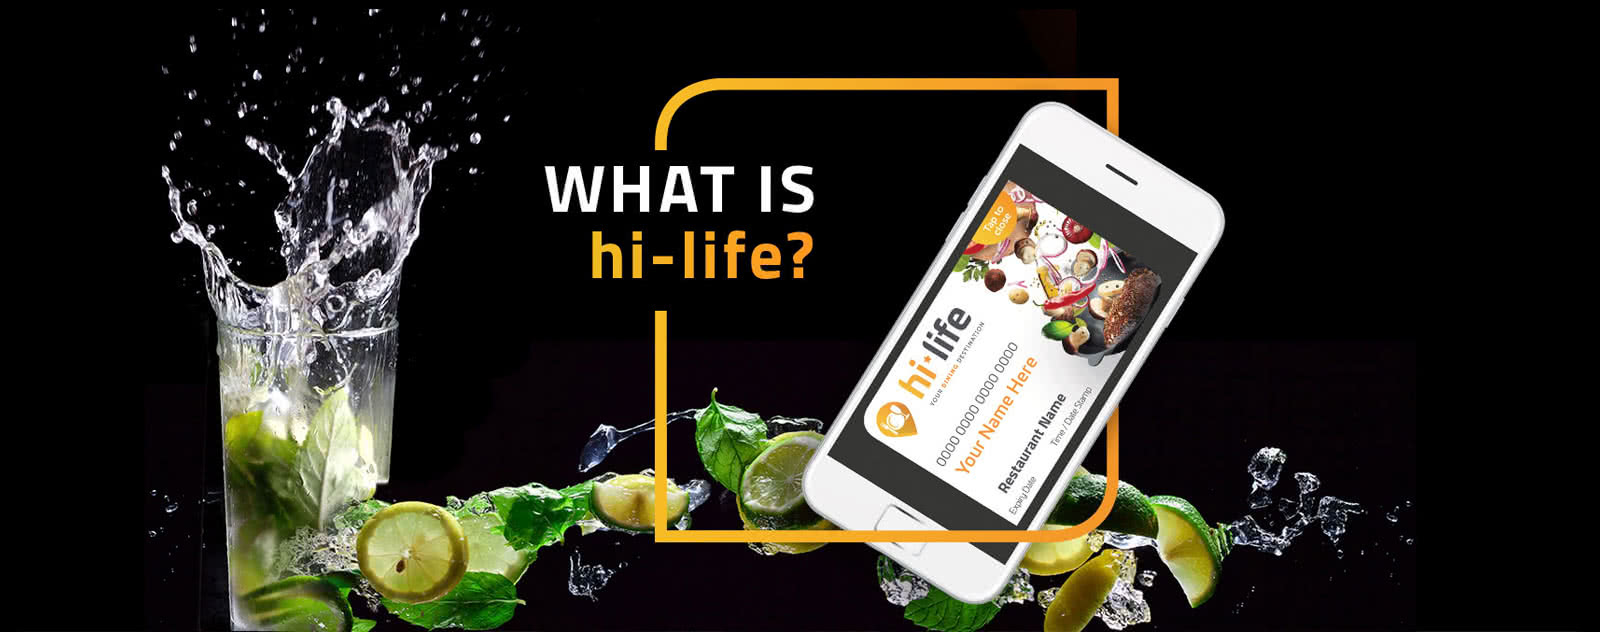 What is hi-life?